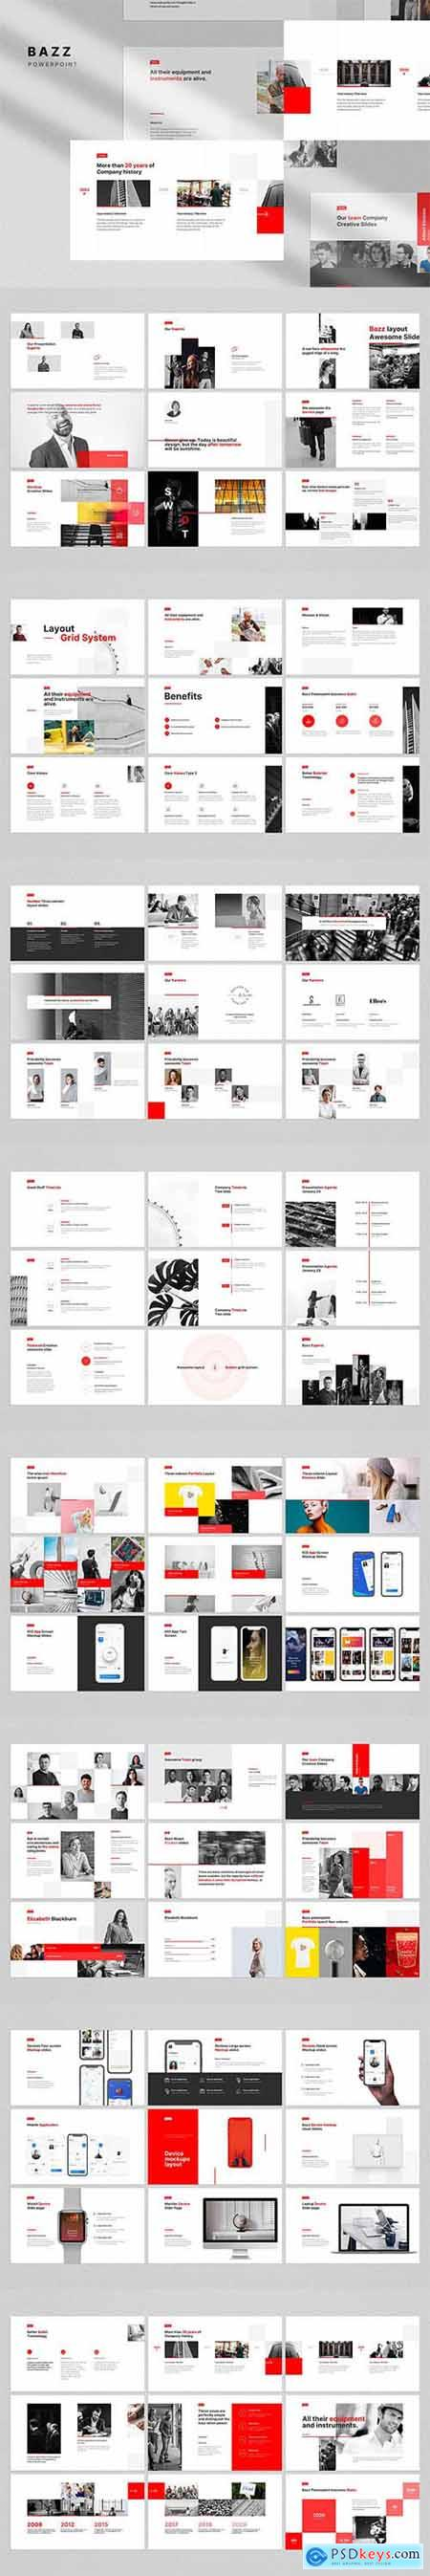 BAZZ Powerpoint and Keynote Template